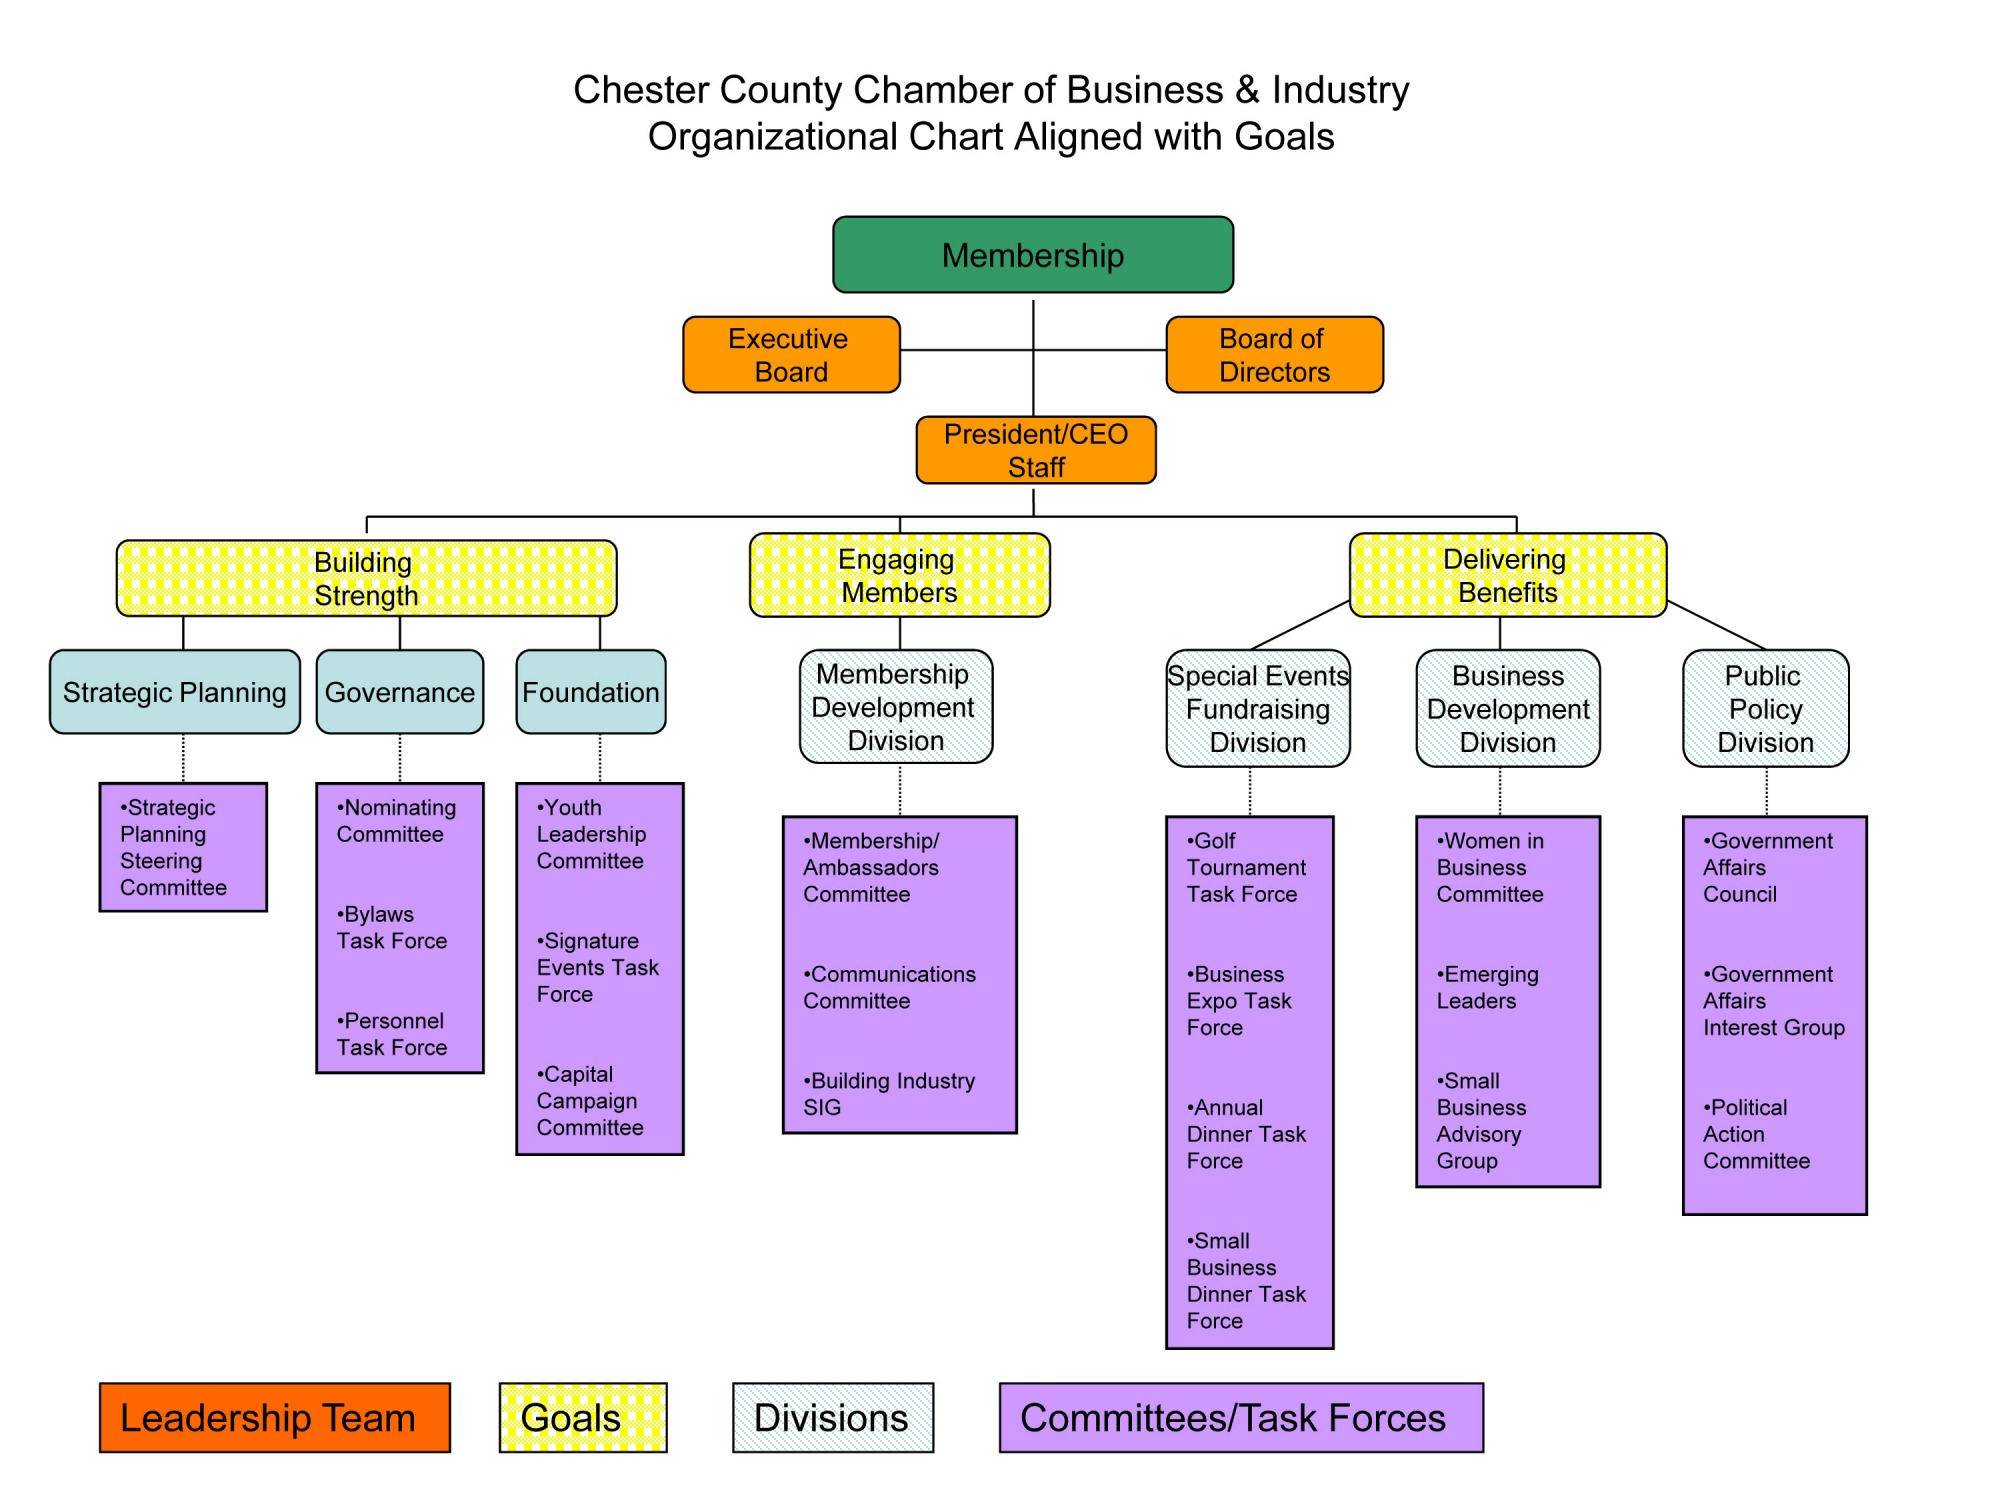 organizational chart of chester county chamber of commerce